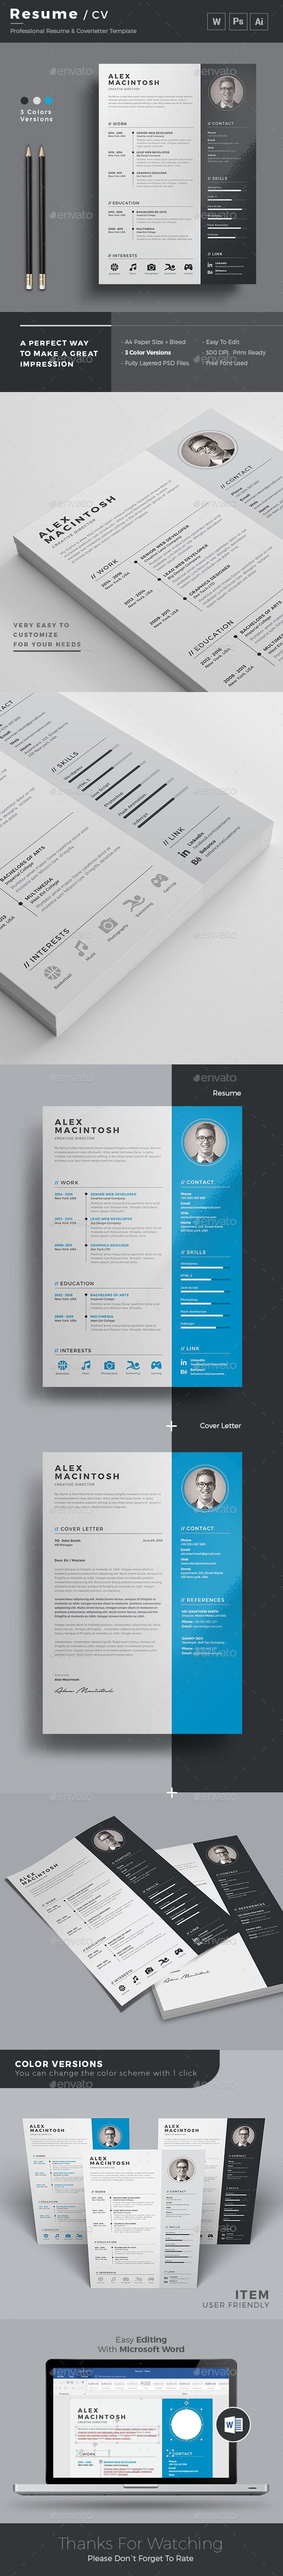 best ideas about resume templates resume template psd ms word here graphicriver